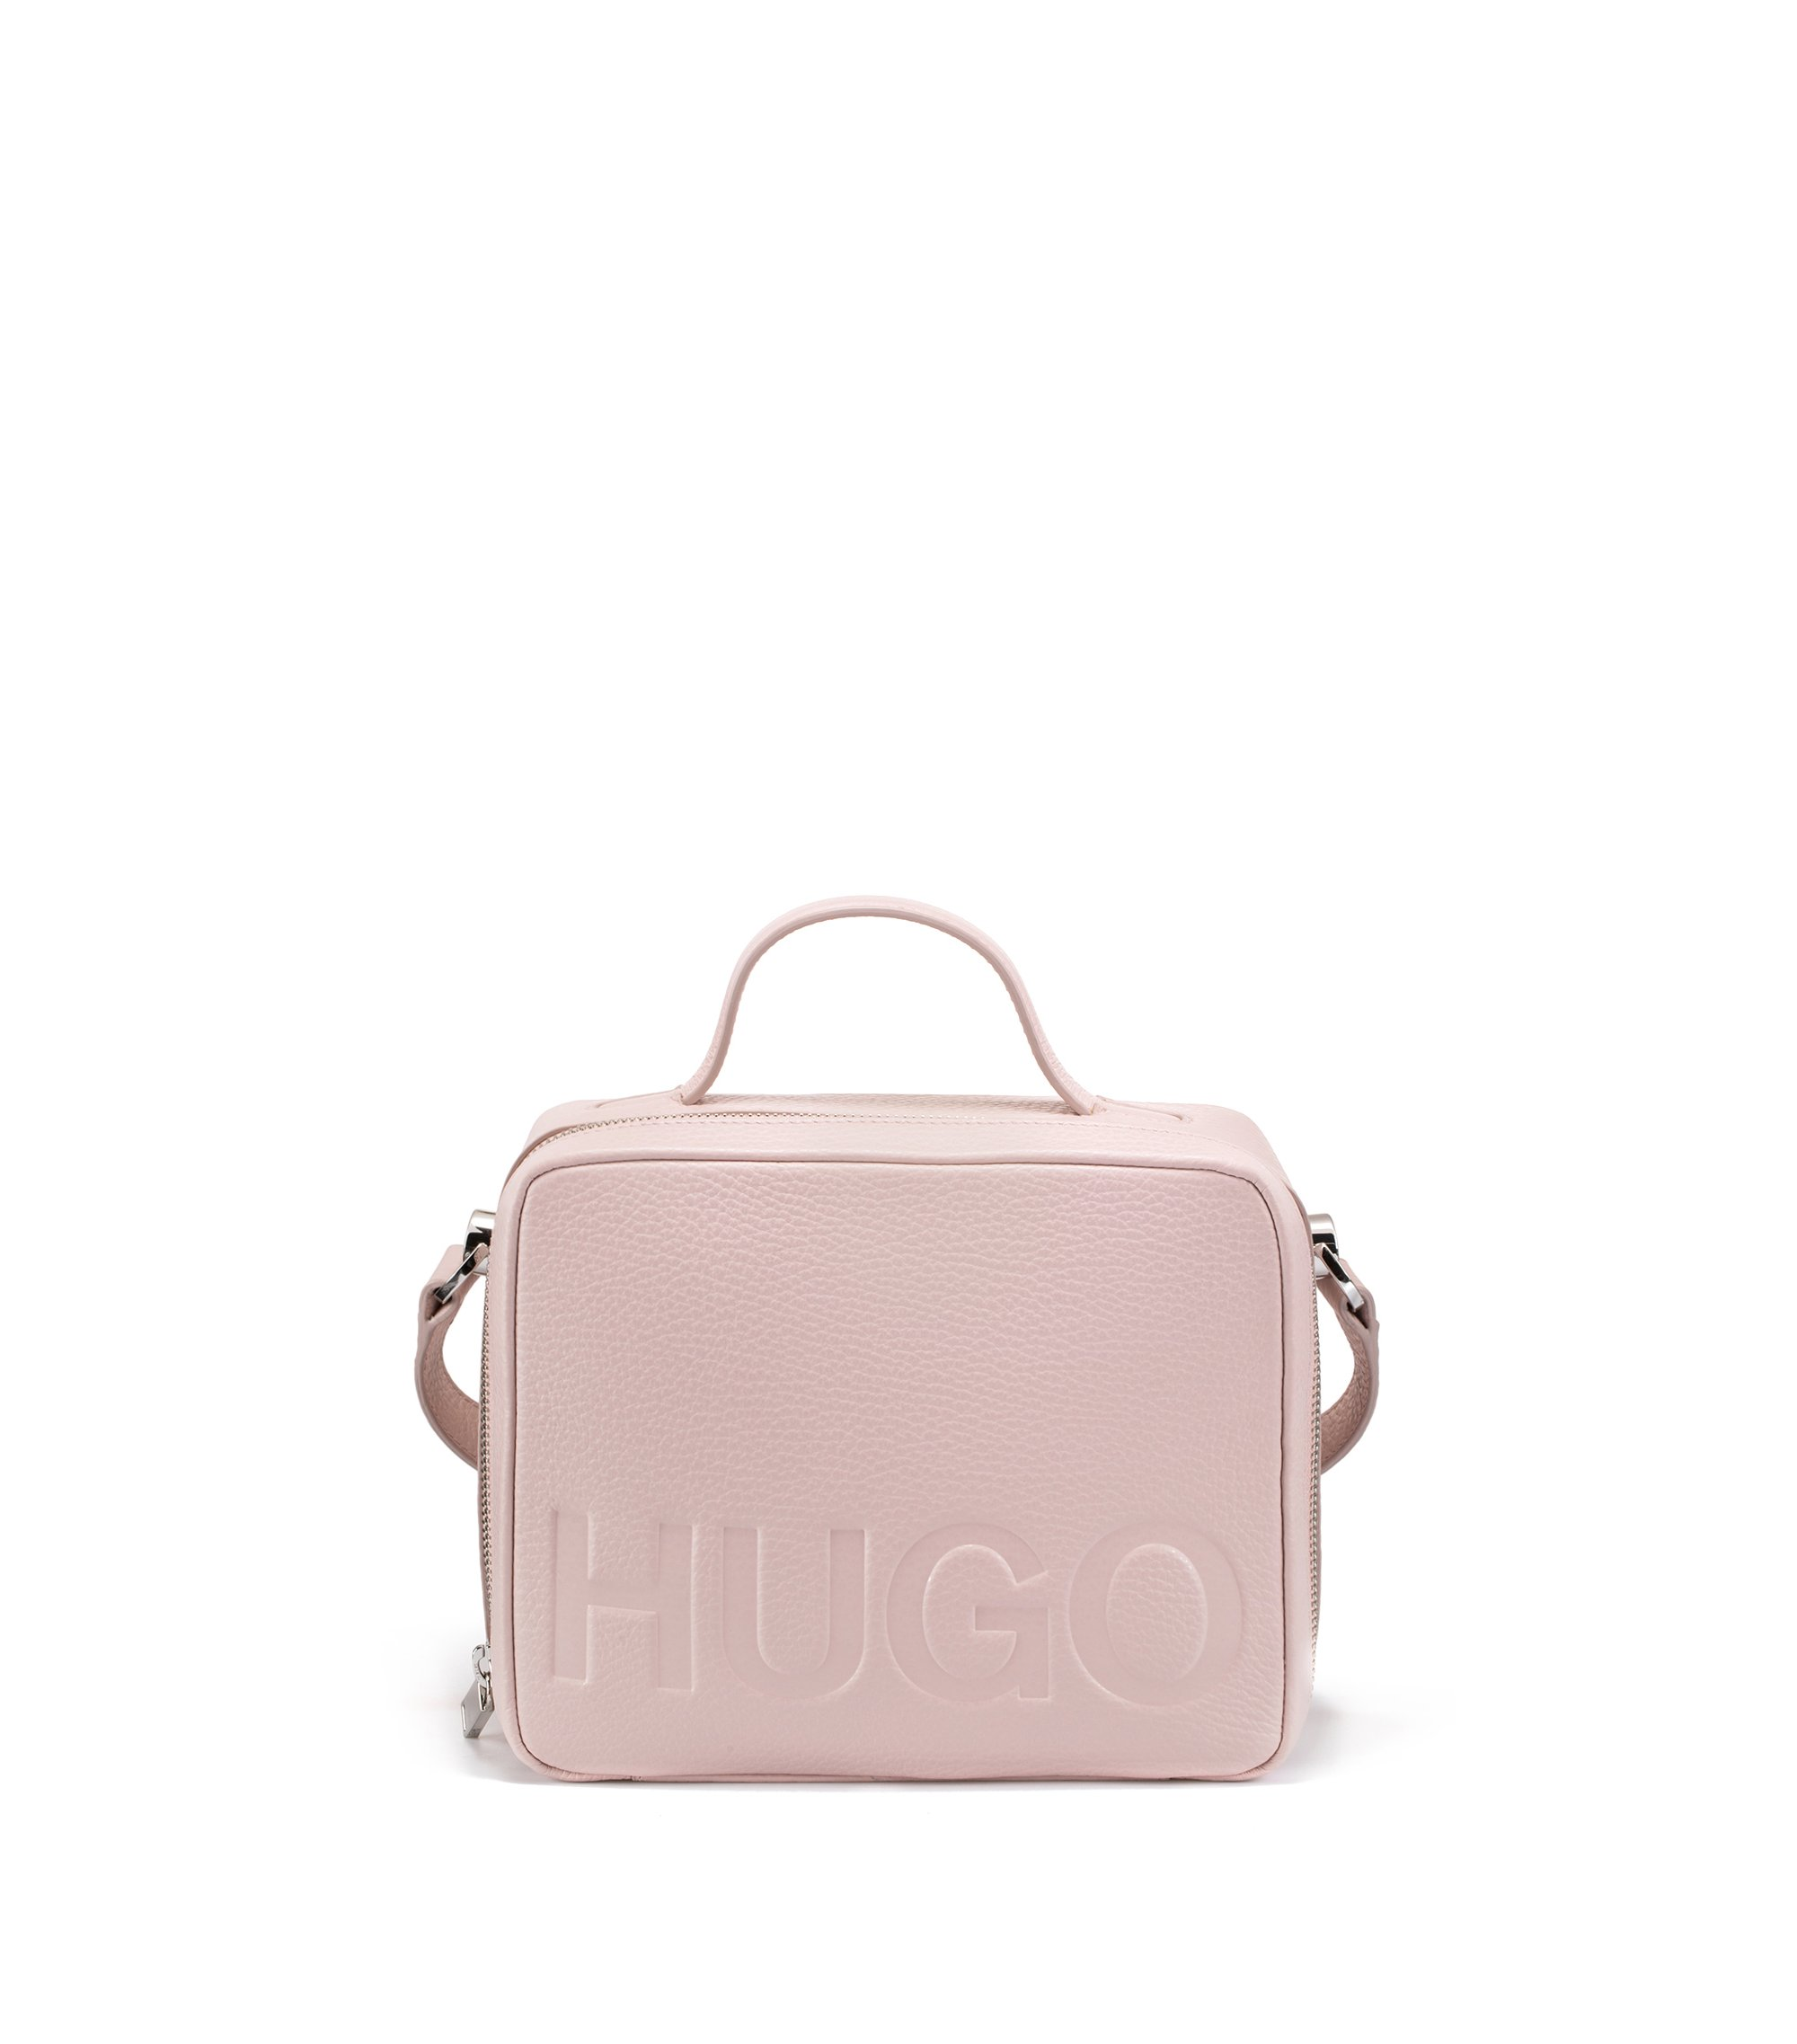 Leather shoulder bag with embossed logo, light pink